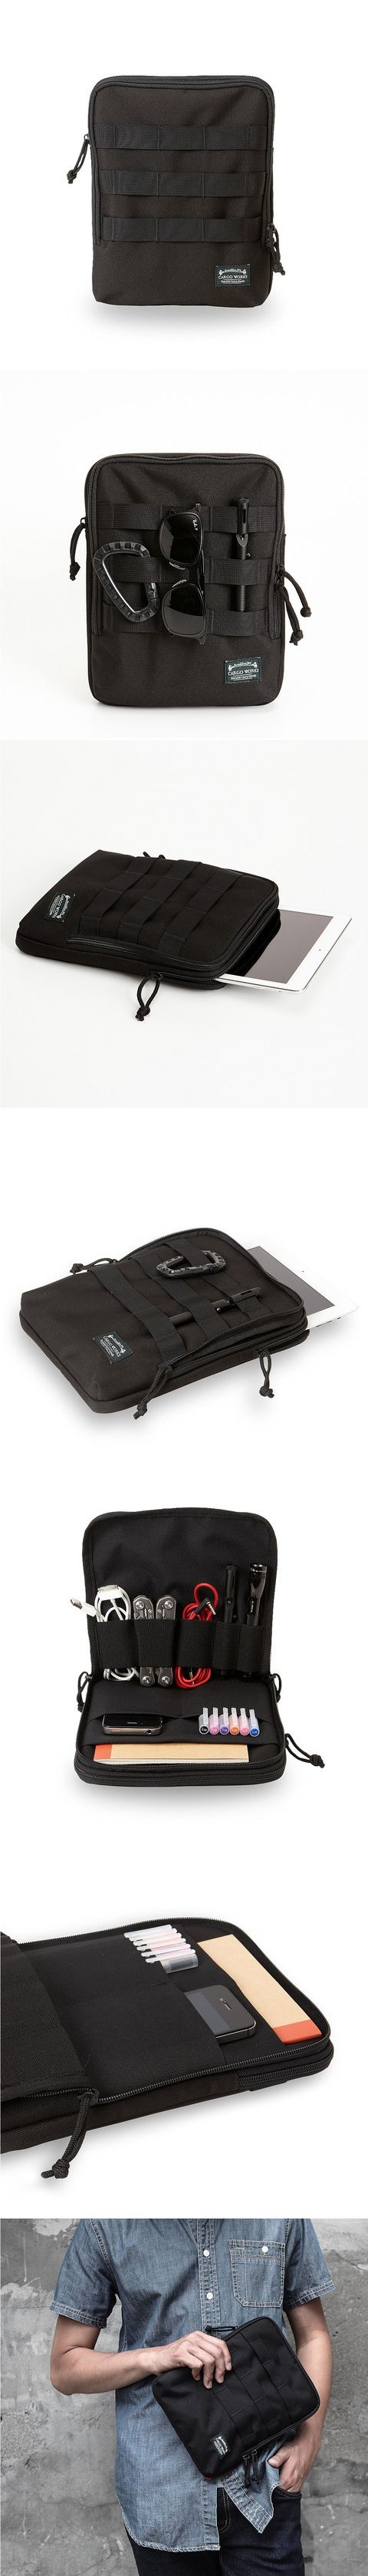 A compact lightweight design for organizing everyday carry while protecting your iPad and iPhone